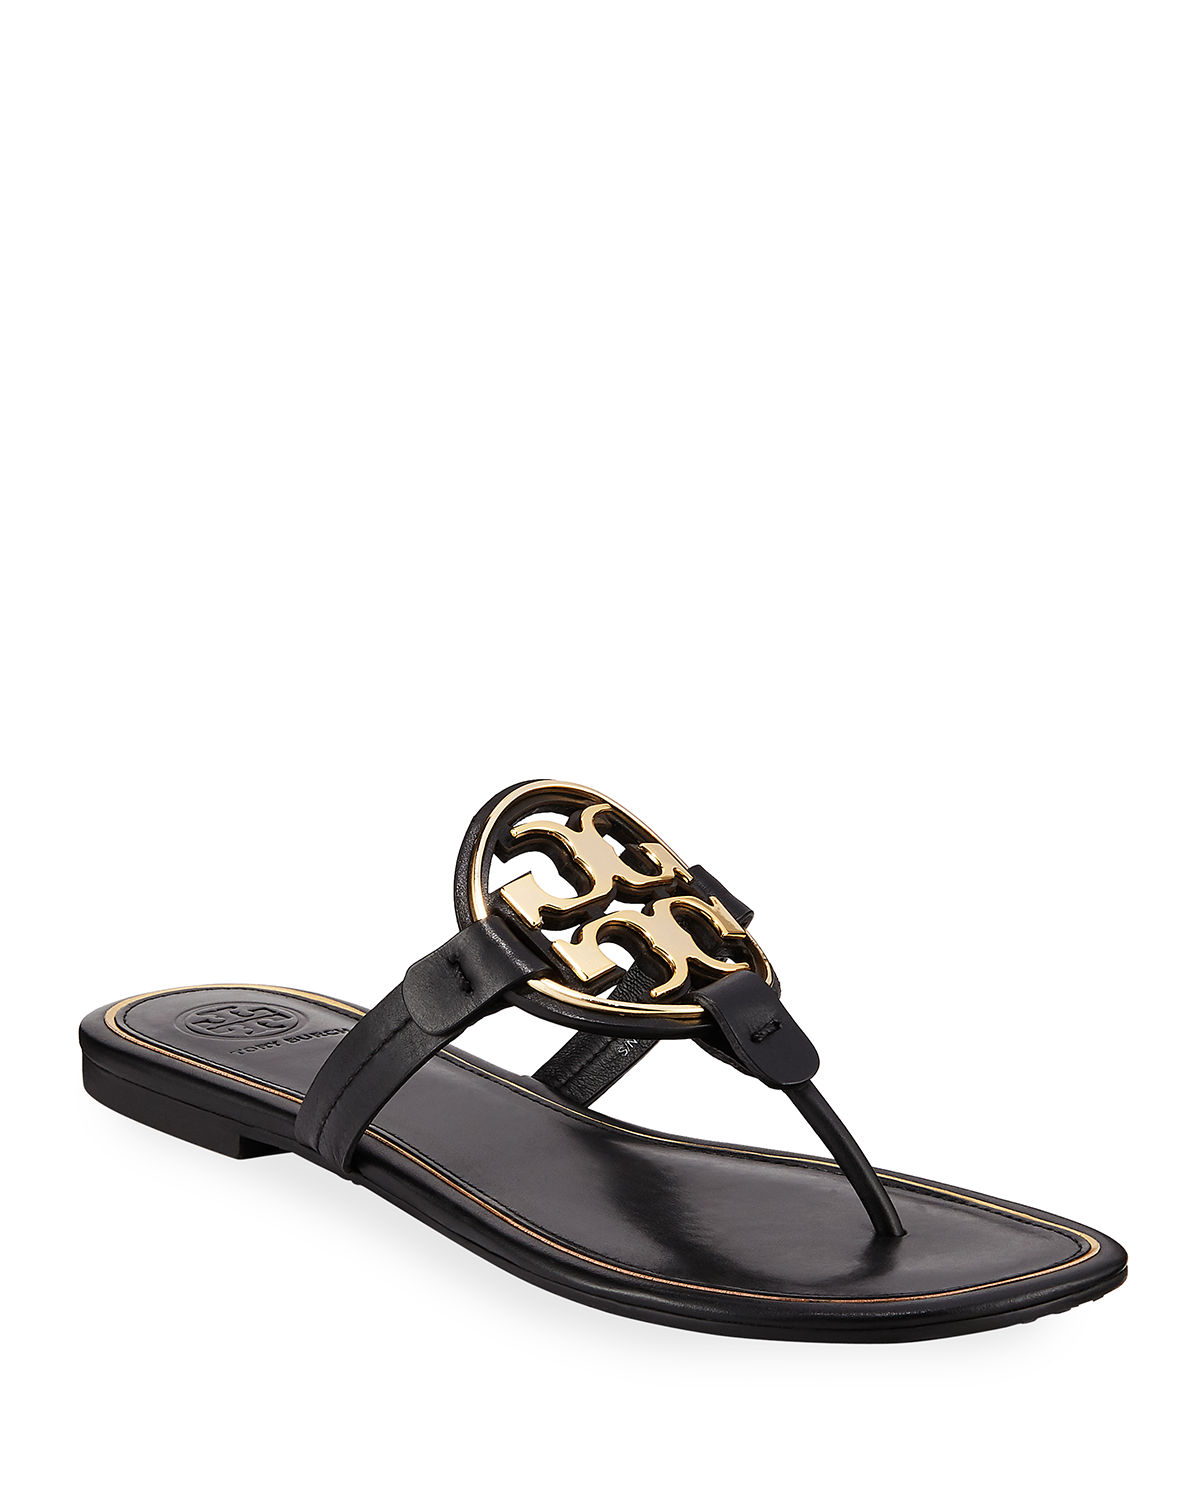 fb92f0b1da5f Tory Burch Miller Flat Metal Logo Slide Sandals